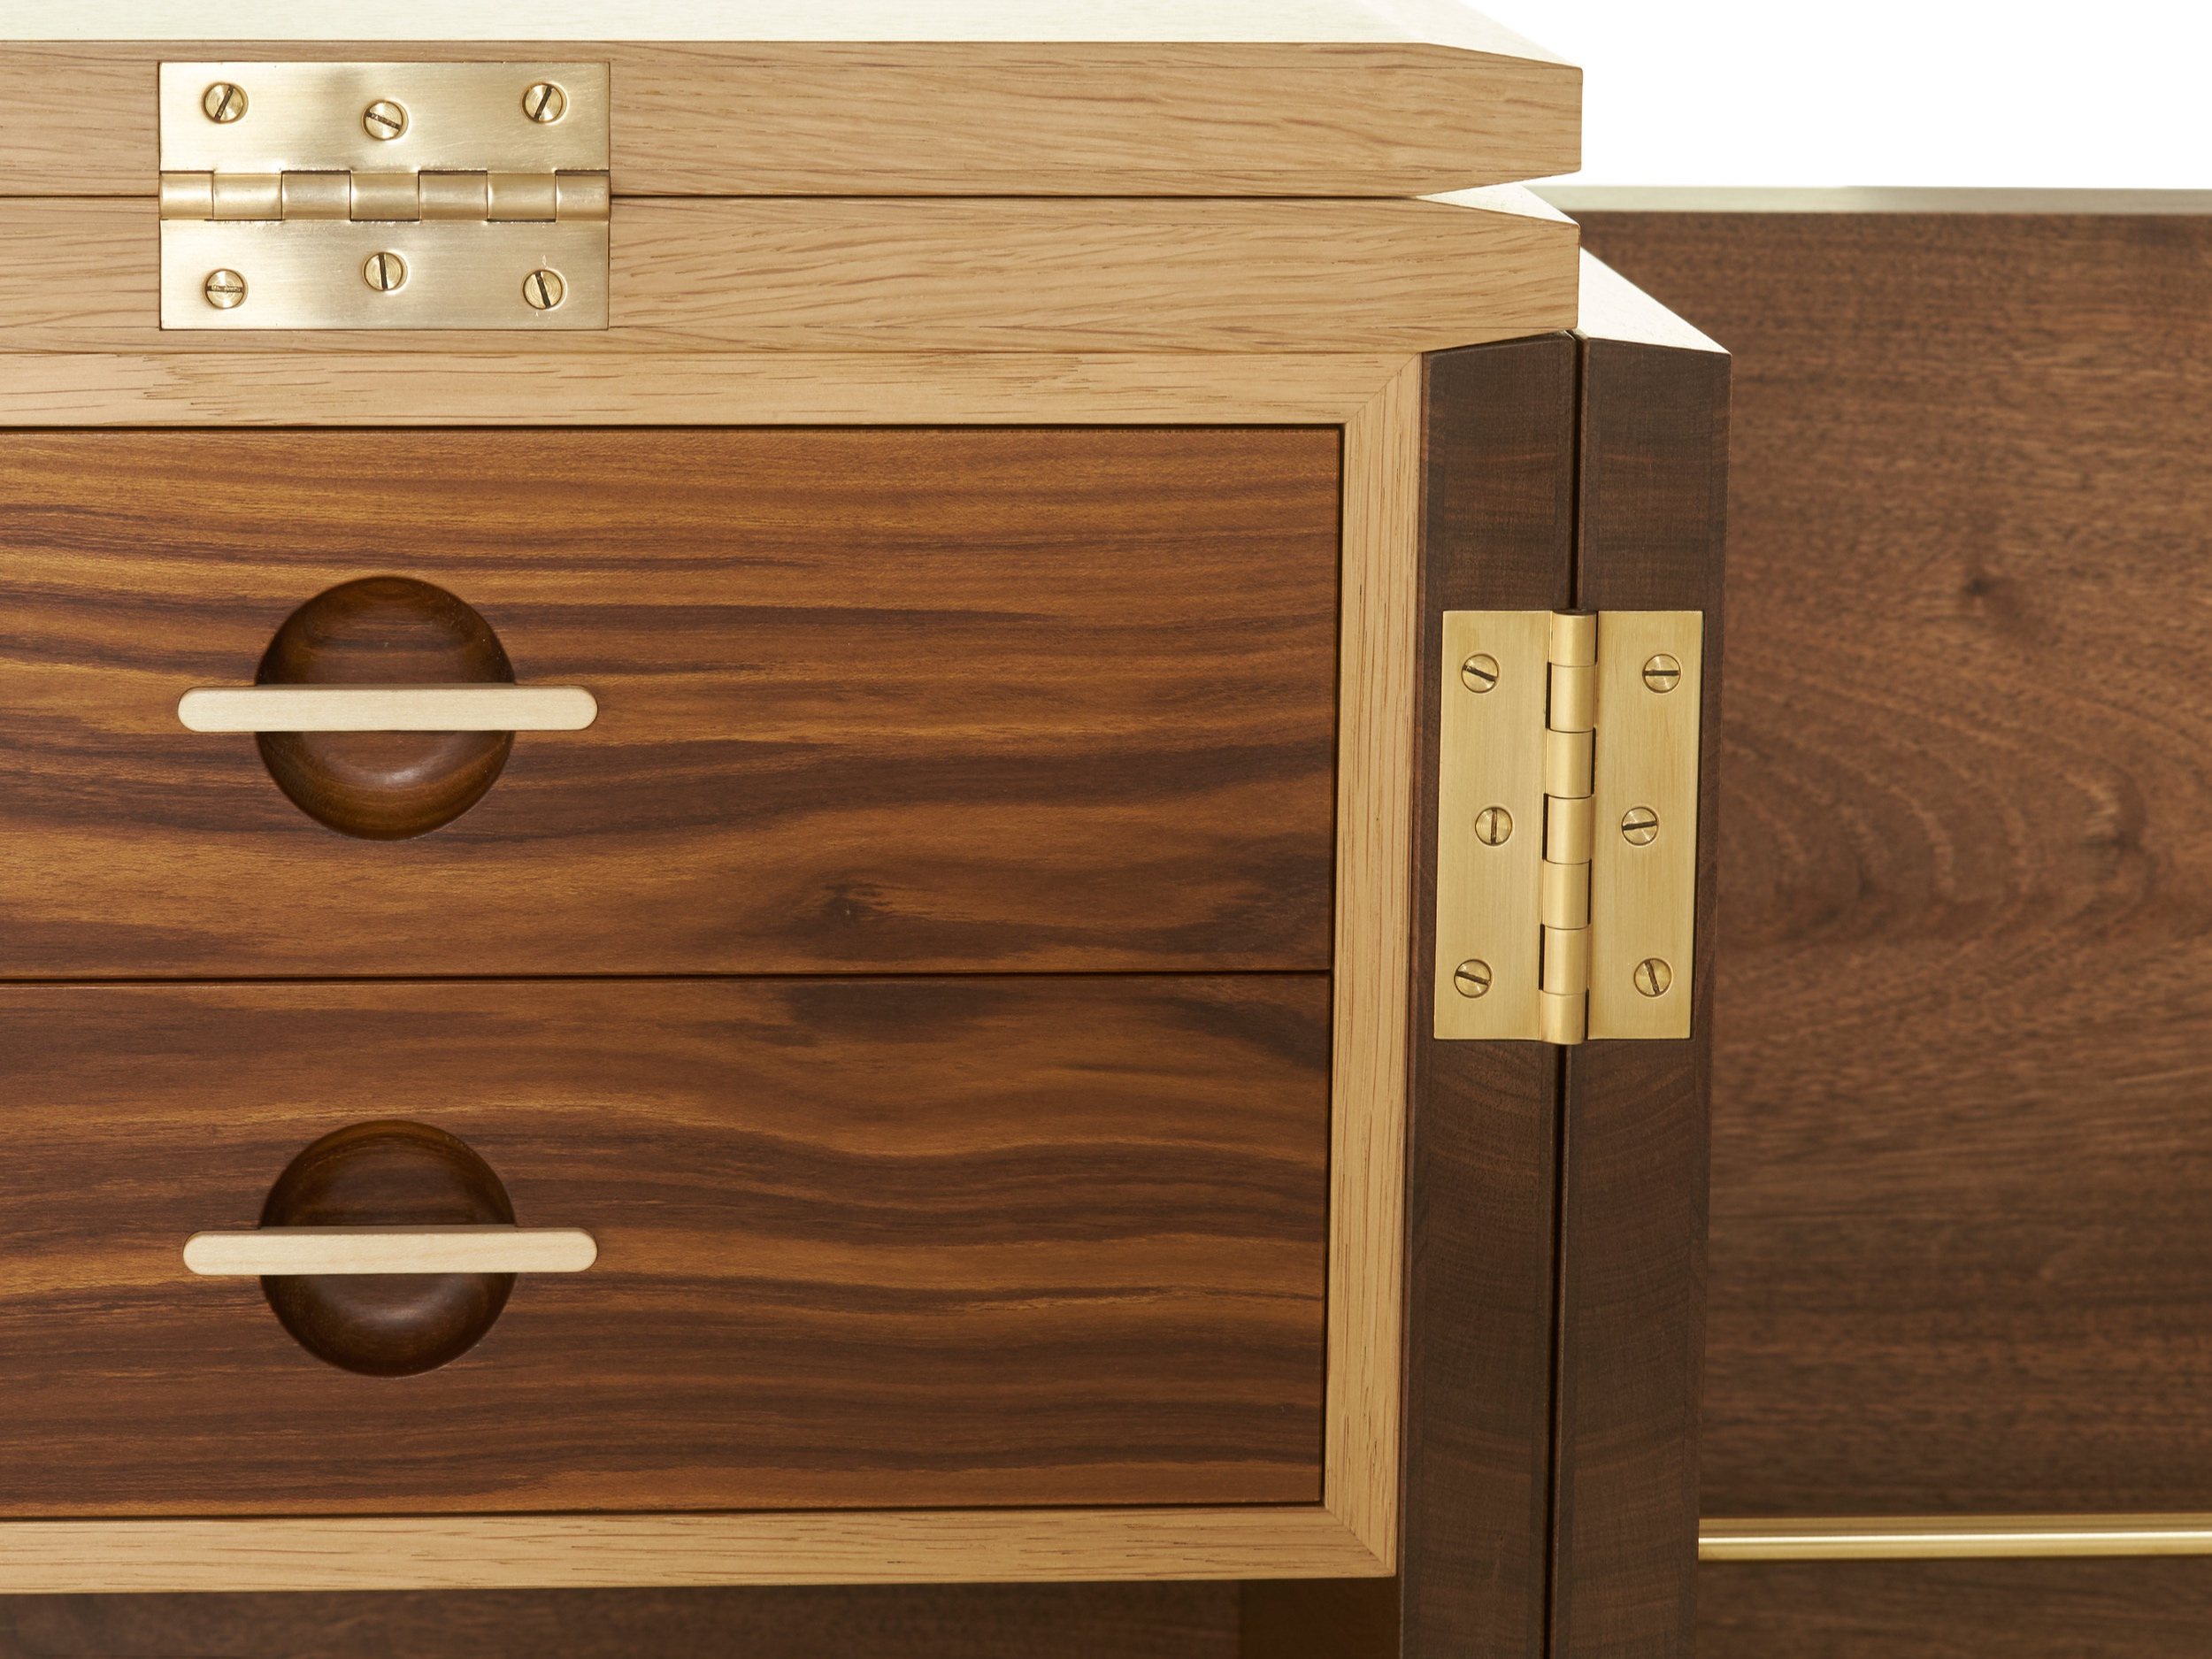 sycamore and laburnum drawer handle detail on Whisky Cabinet